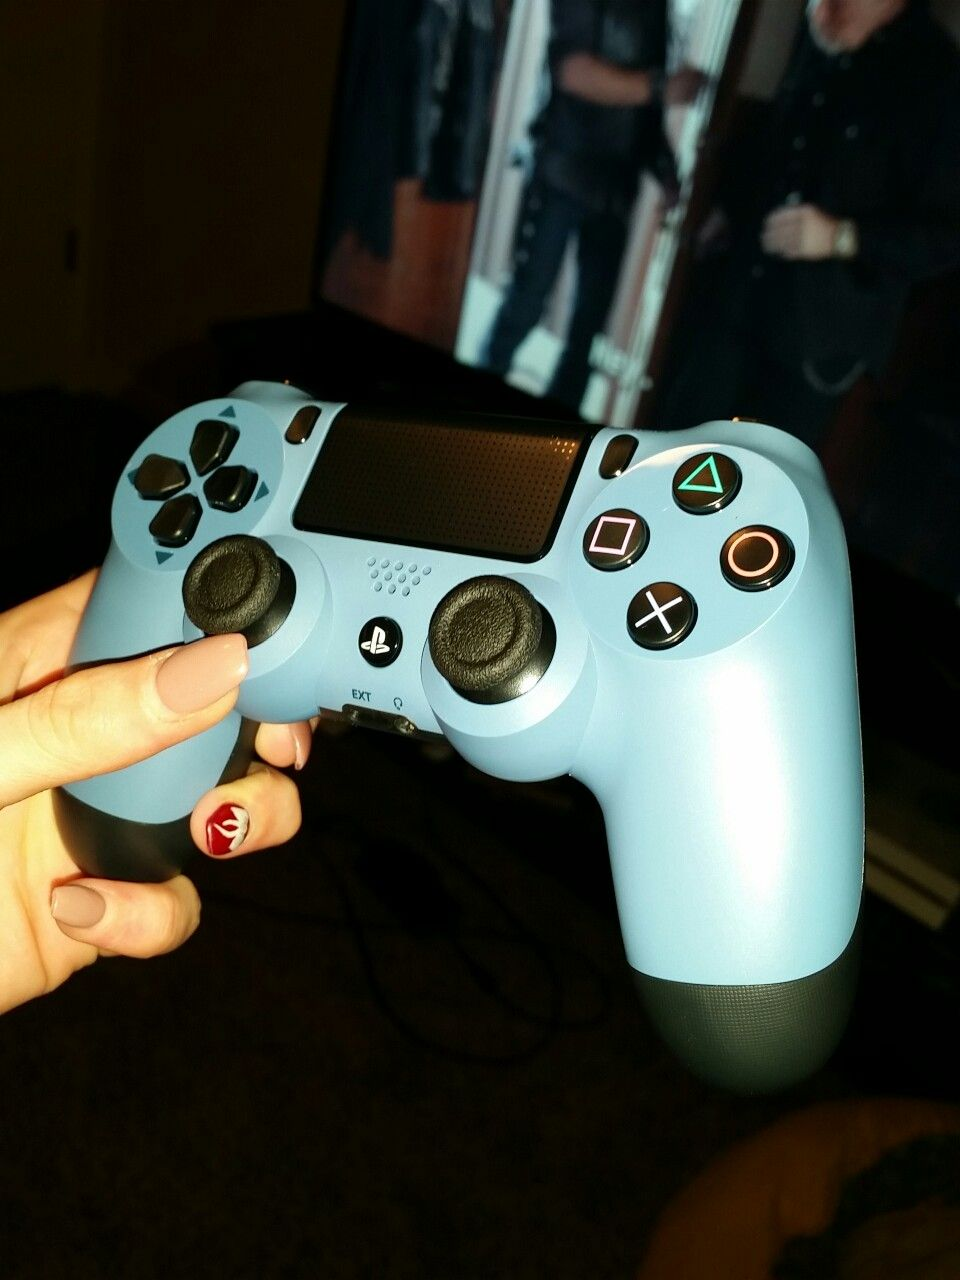 Ps4 Controller Uncharted 4 Ps4 Controller Ps4 Games Gamer Girl